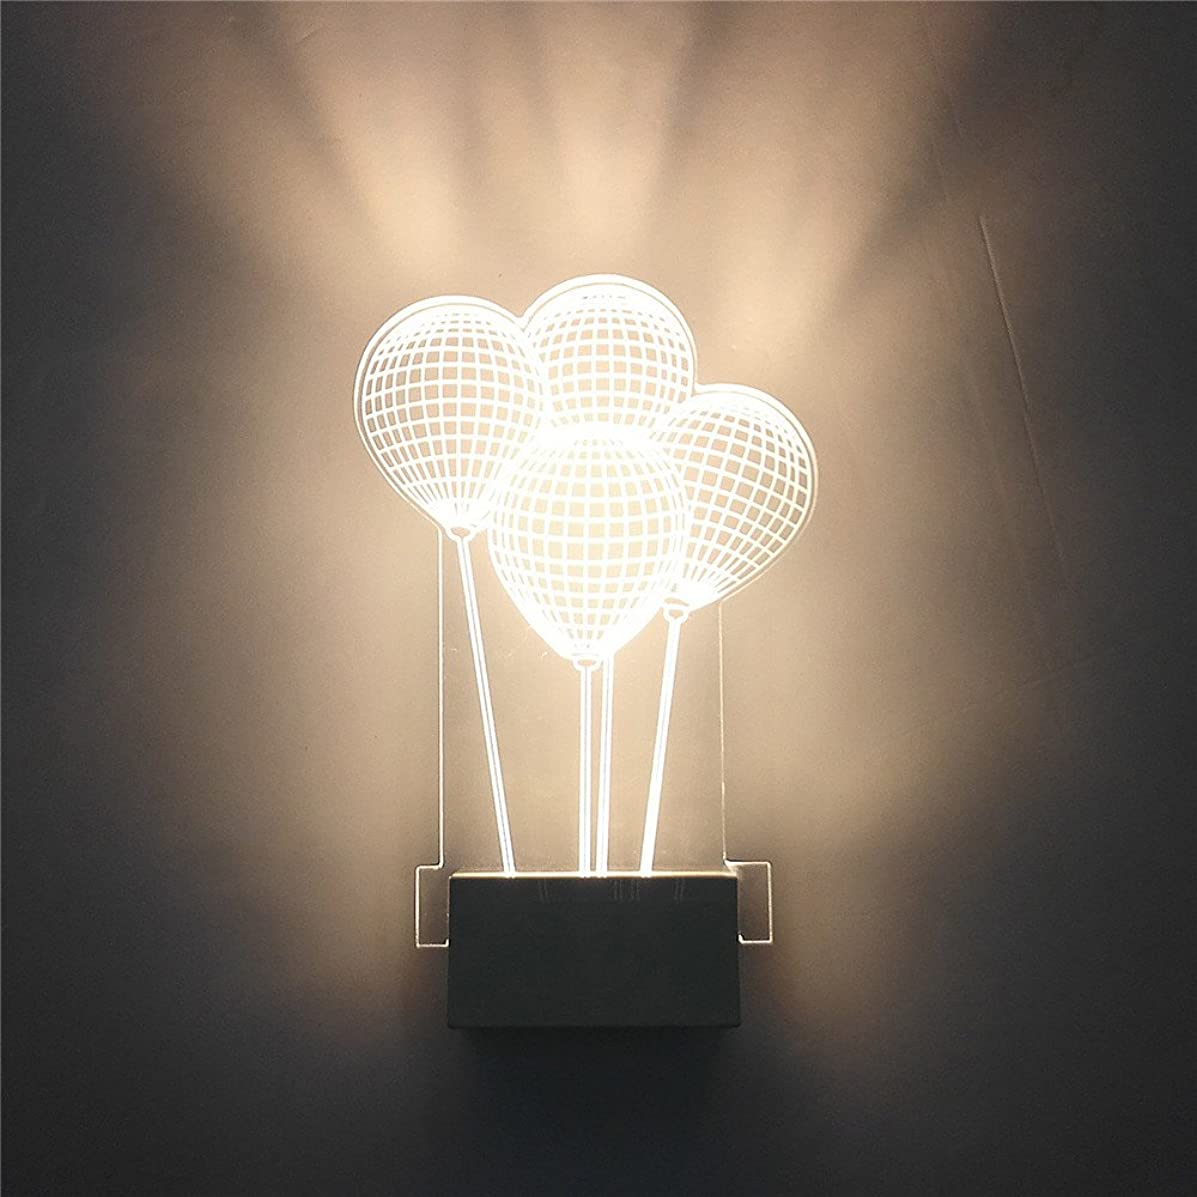 GR 8W Modern Led Wall Lamps Balloon Light Creative Bedroom Bedside Lamp Acrylic Bathroom Living Room Indoor Wall Lighting (1PC) (Color : Warm White)